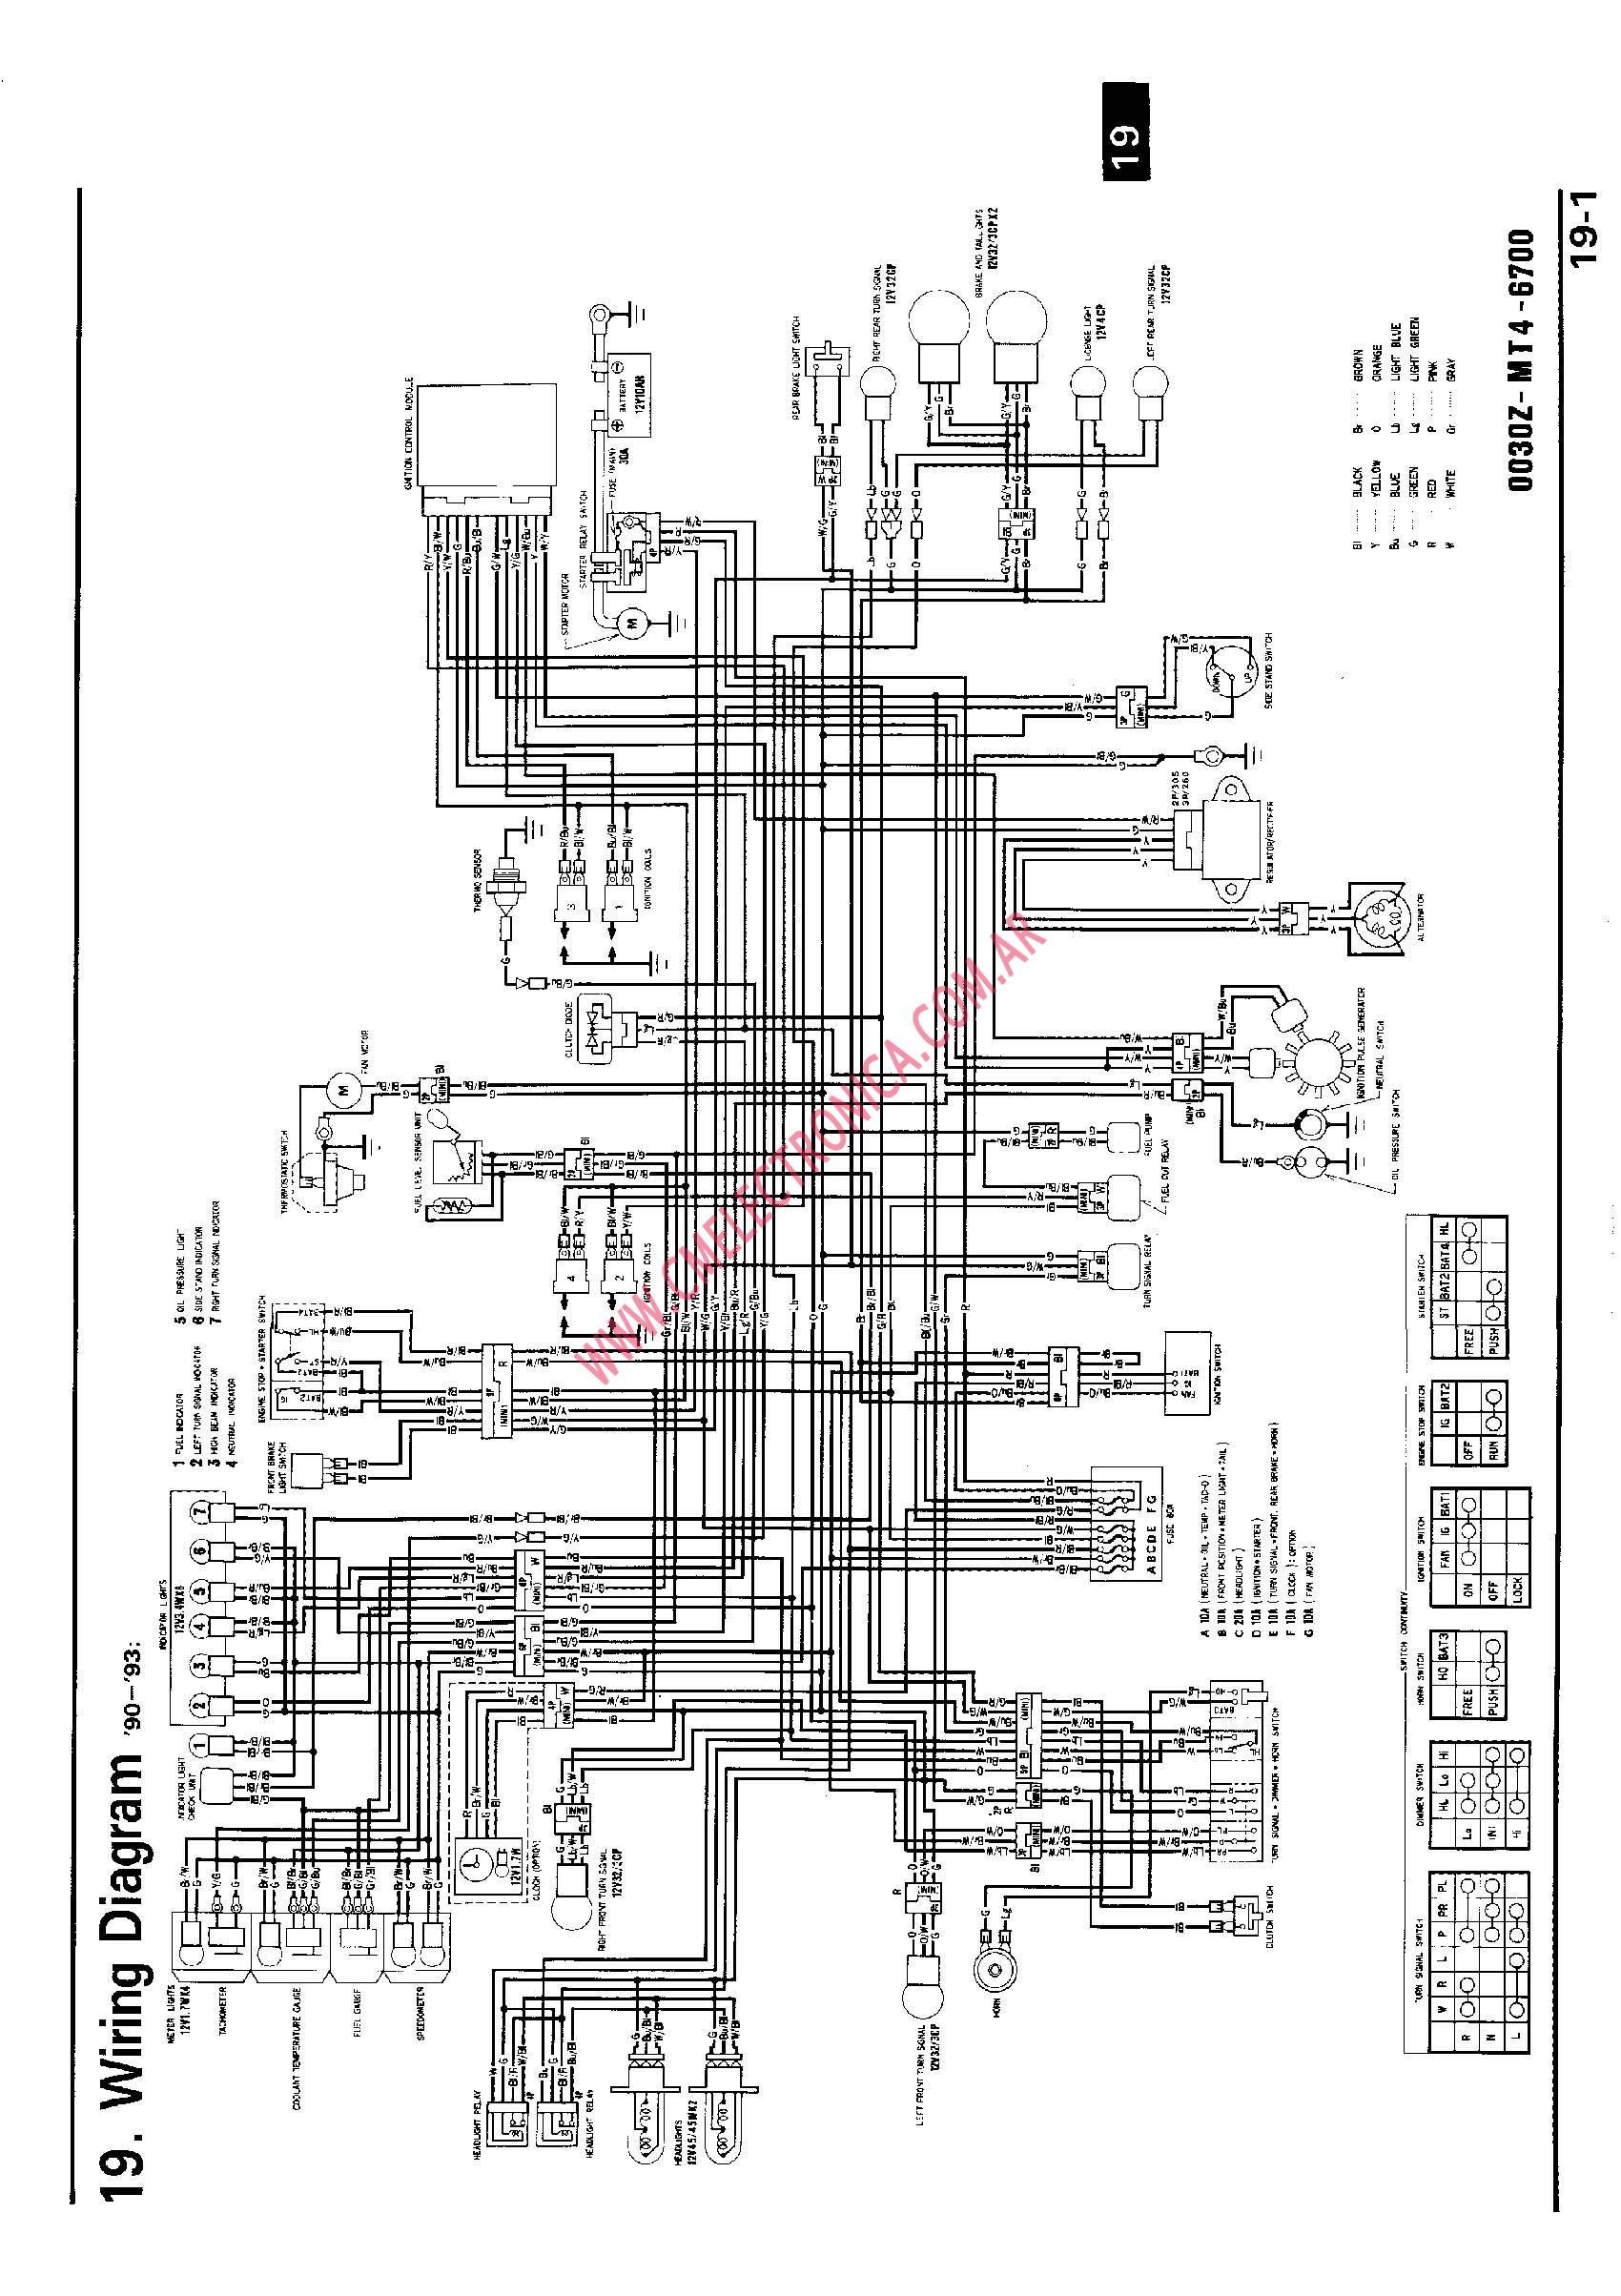 91 Honda Civic Fuse Box Diagram Simple Guide About Wiring Vfr 750 Under Hood